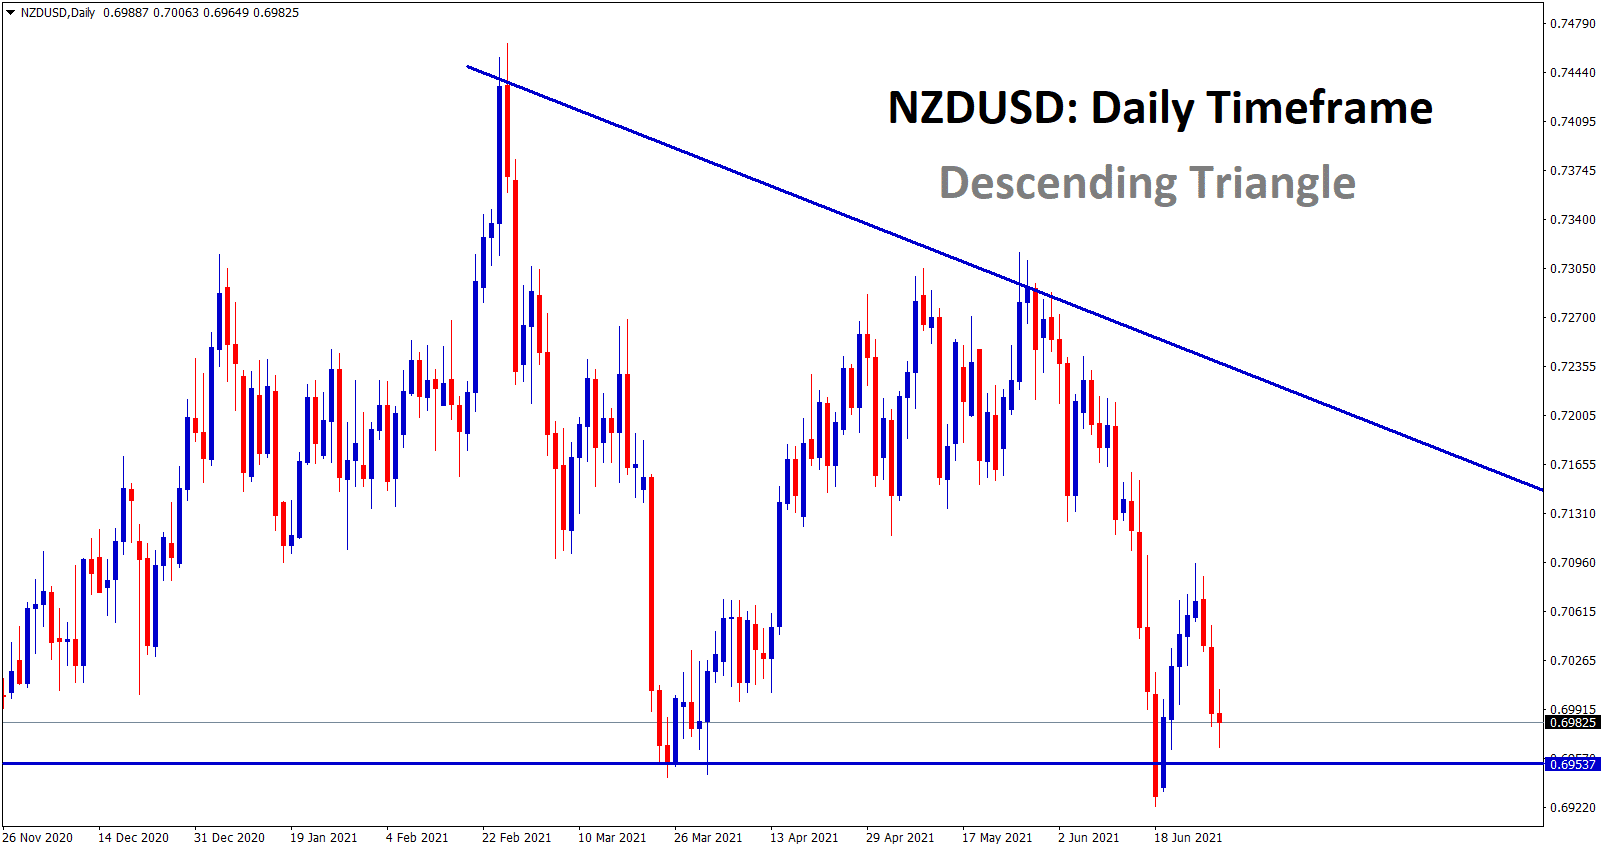 NZDUSD is near to the support zone forming descending Triangle pattern